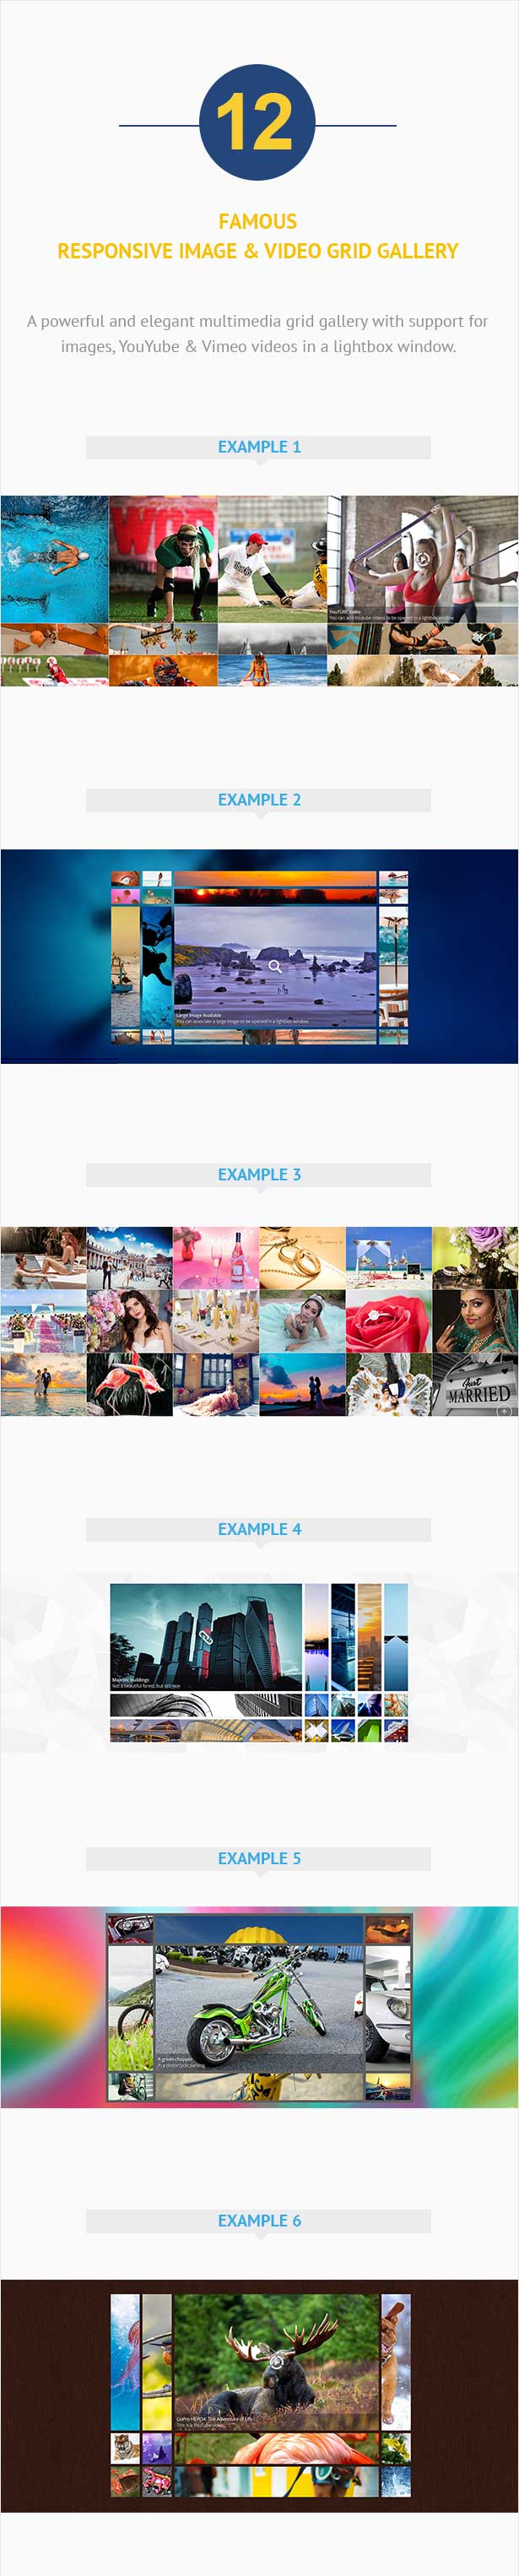 WPBakery Addon – Famous - Responsive Image & Video Grid Gallery for WPBakery Page Builder (formerly Visual Composer)